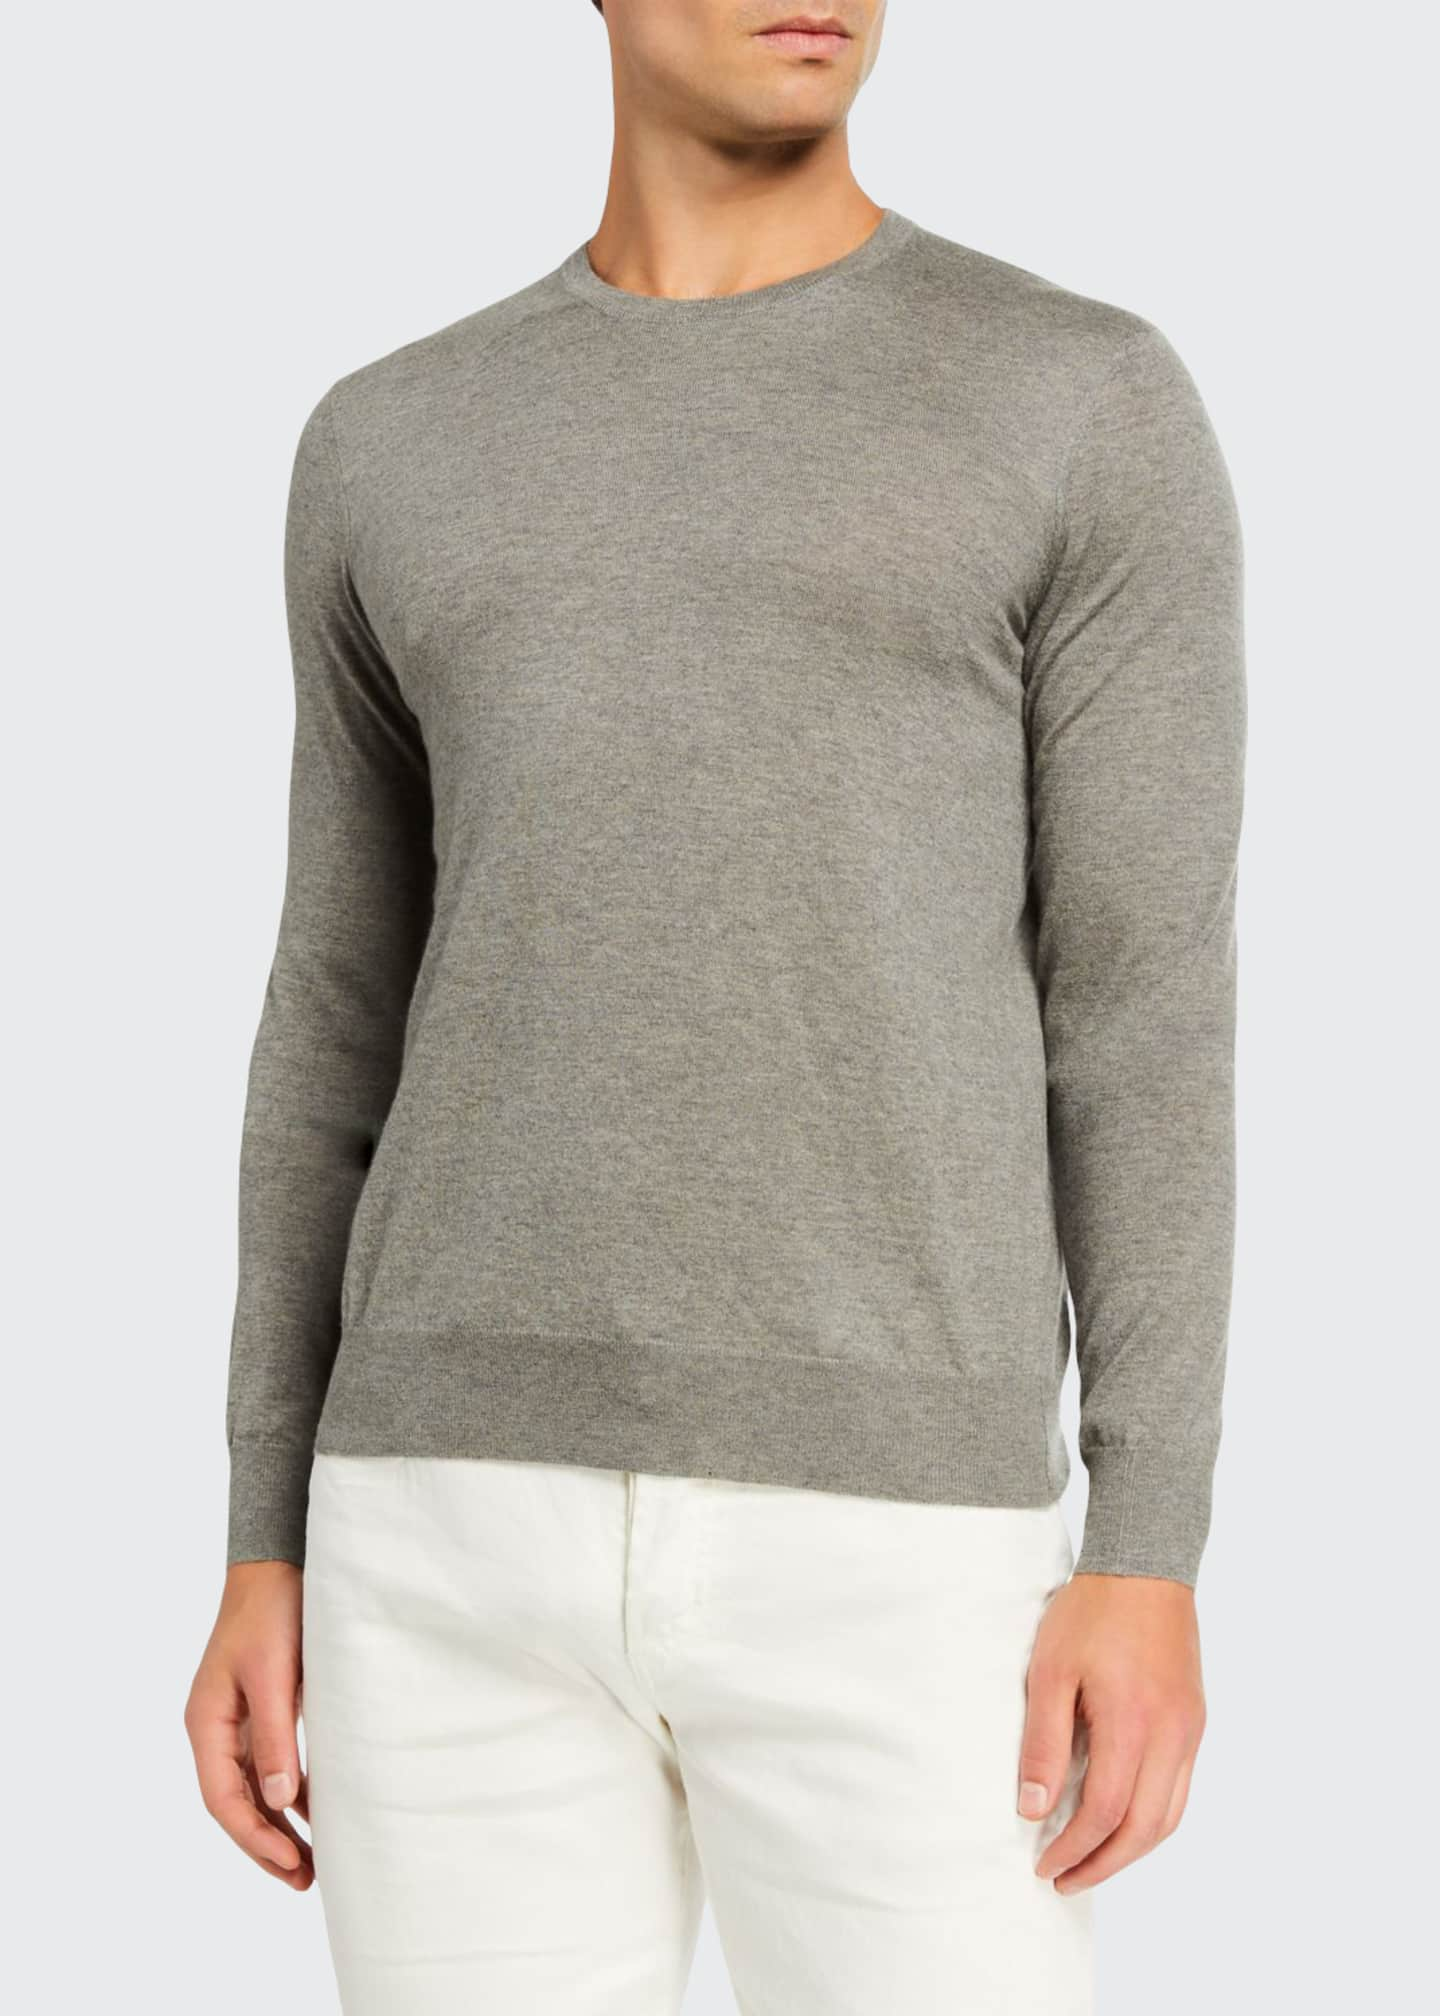 Image 1 of 2: Men's Cashmere Crewneck Sweater